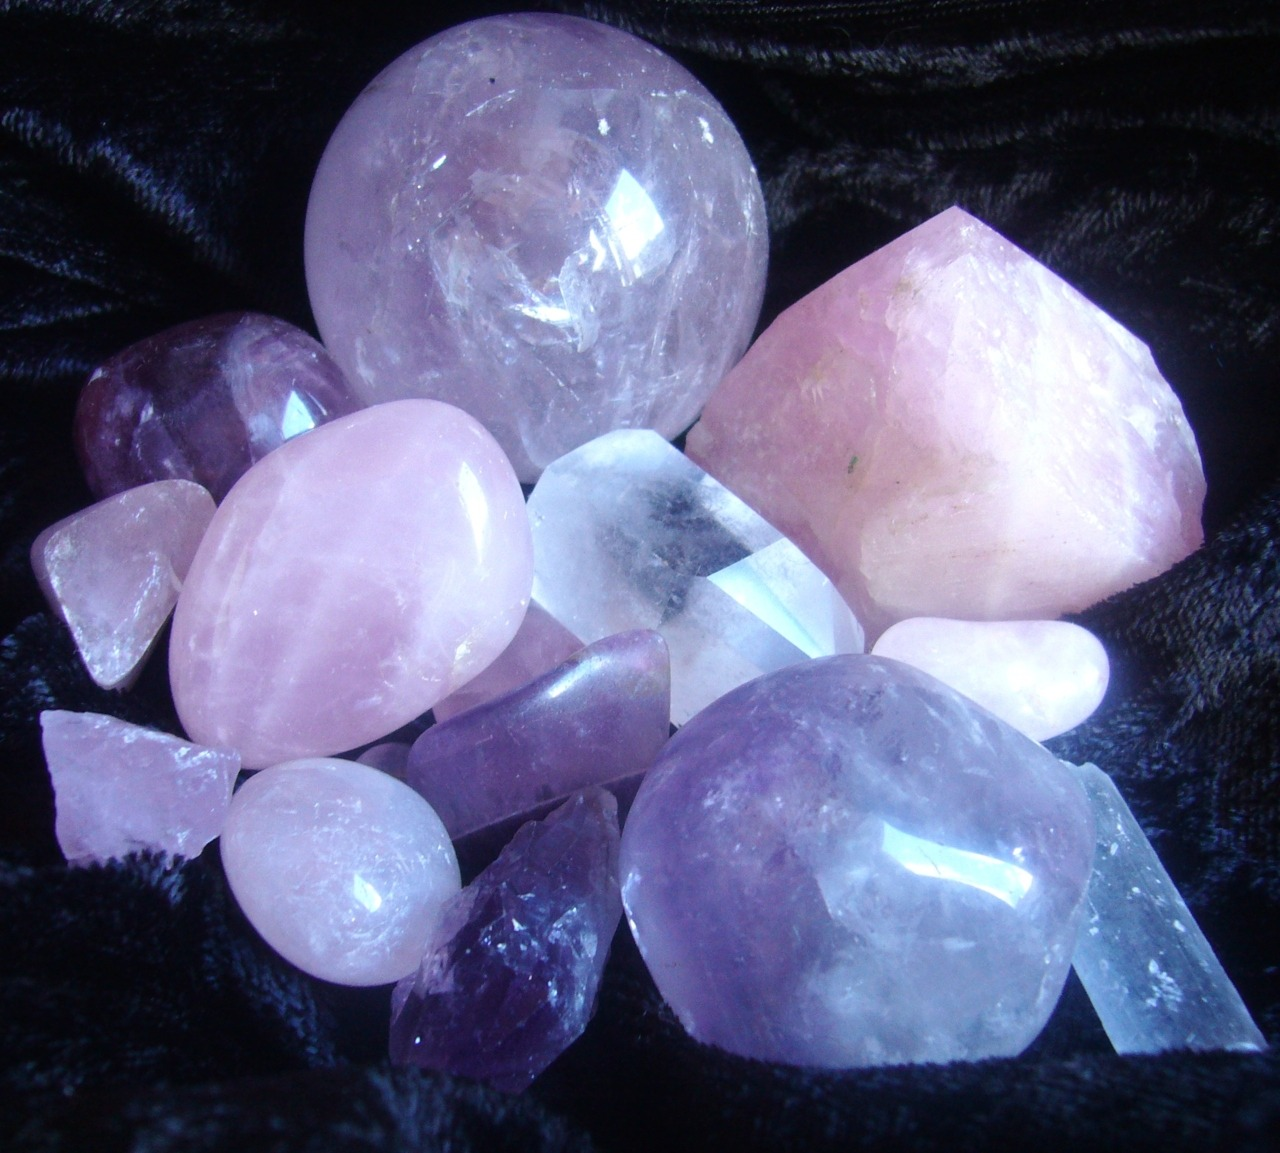 eclipsis-lunae:  * :・゚°.¸  ☆ * crystals * magick * nature * ☆ ¸.°・゚: *